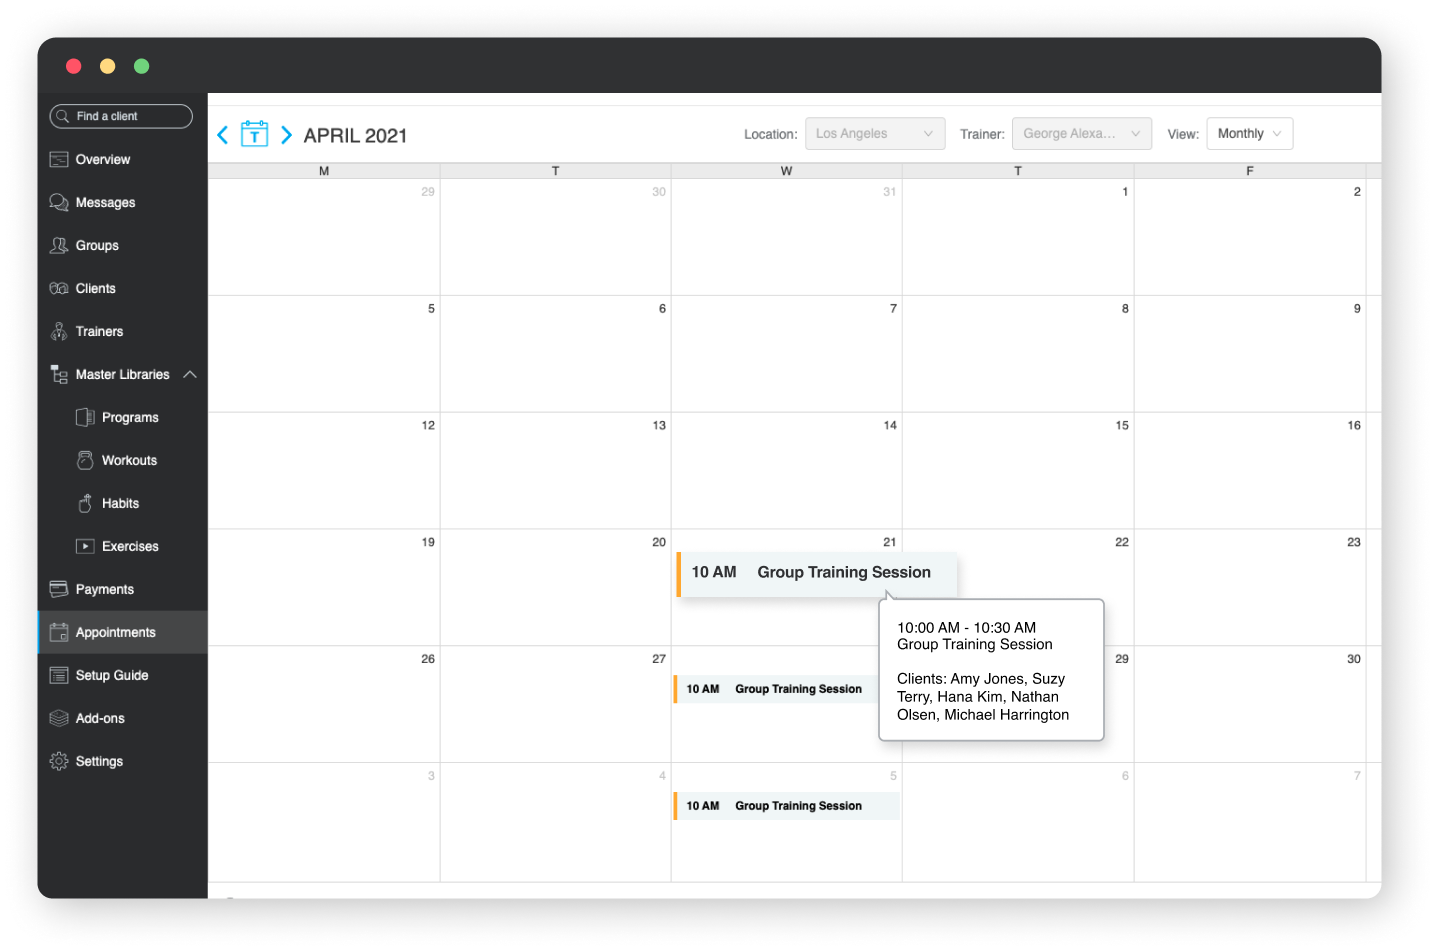 Viewing the Appointments Calendar